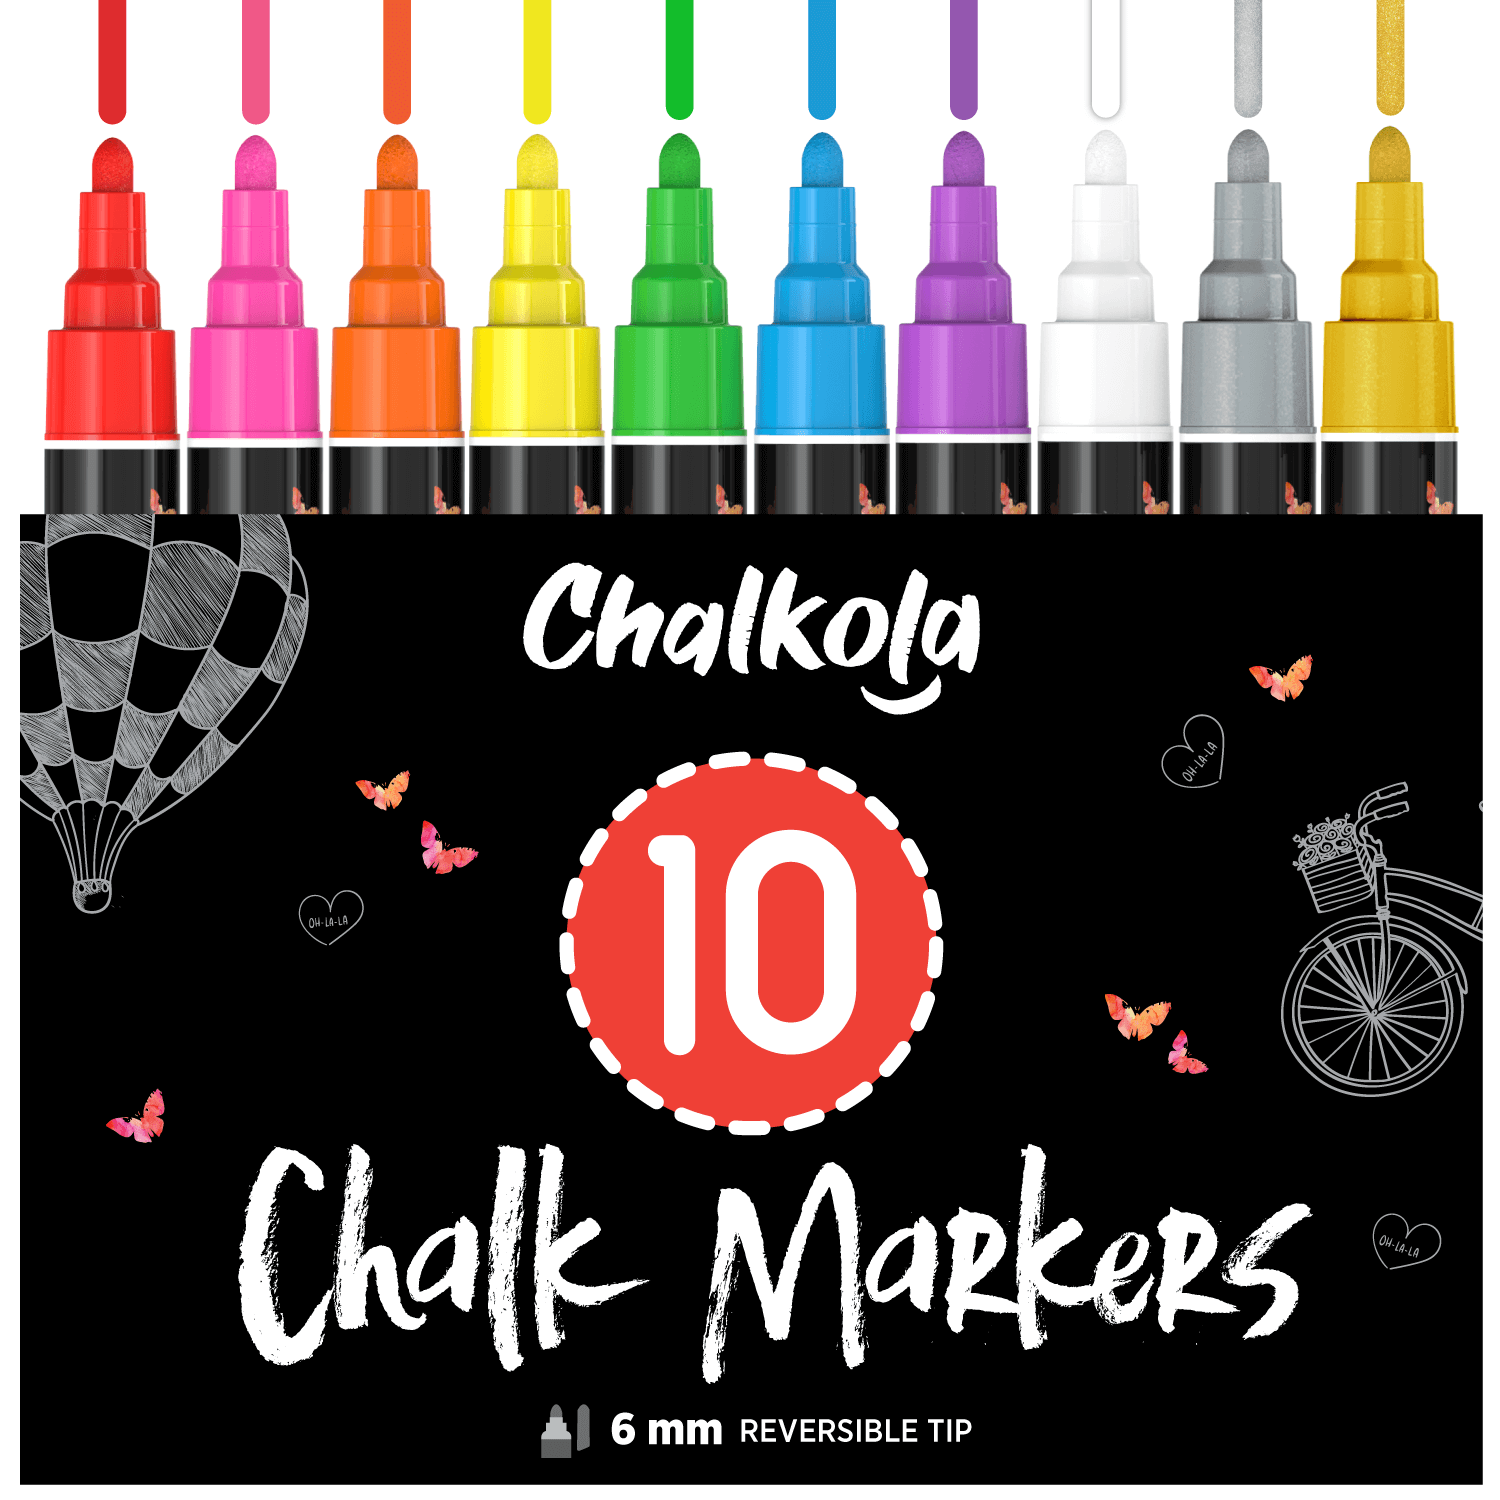 Liquid Chalk Markers (10 Pack) with Gold & Silver - 6mm Reversible Nib